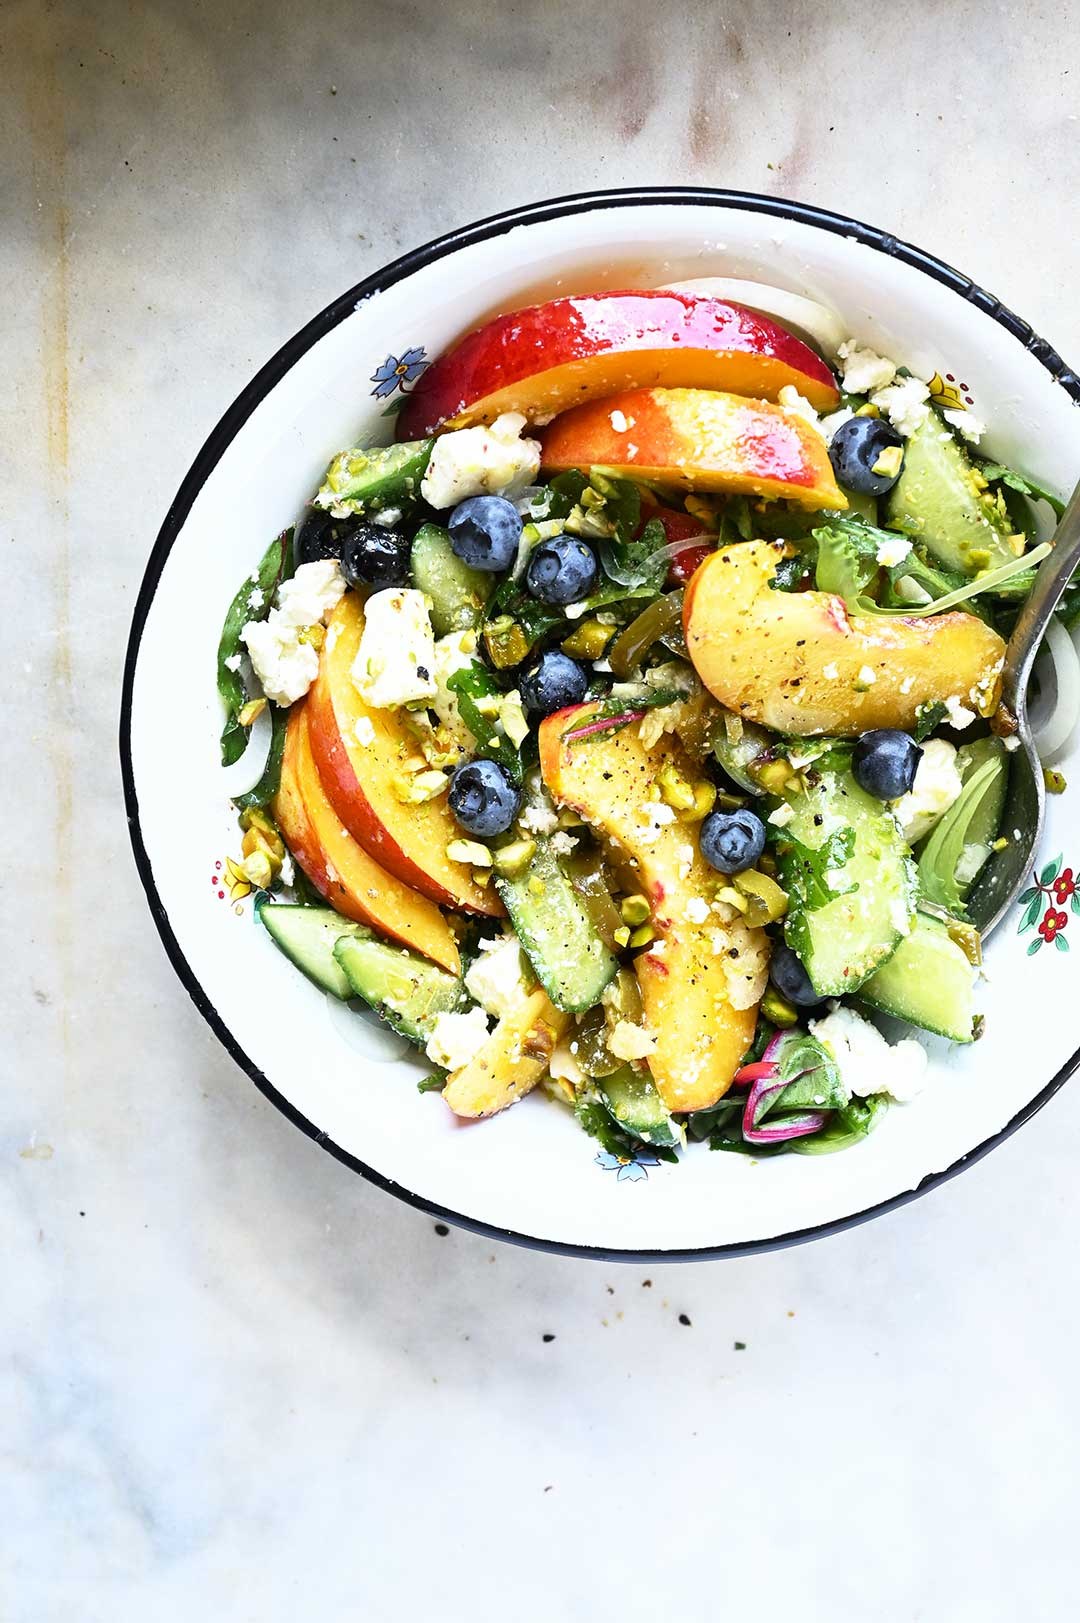 serving dumplings | Cucumber nectarine salad with feta and jalapeños